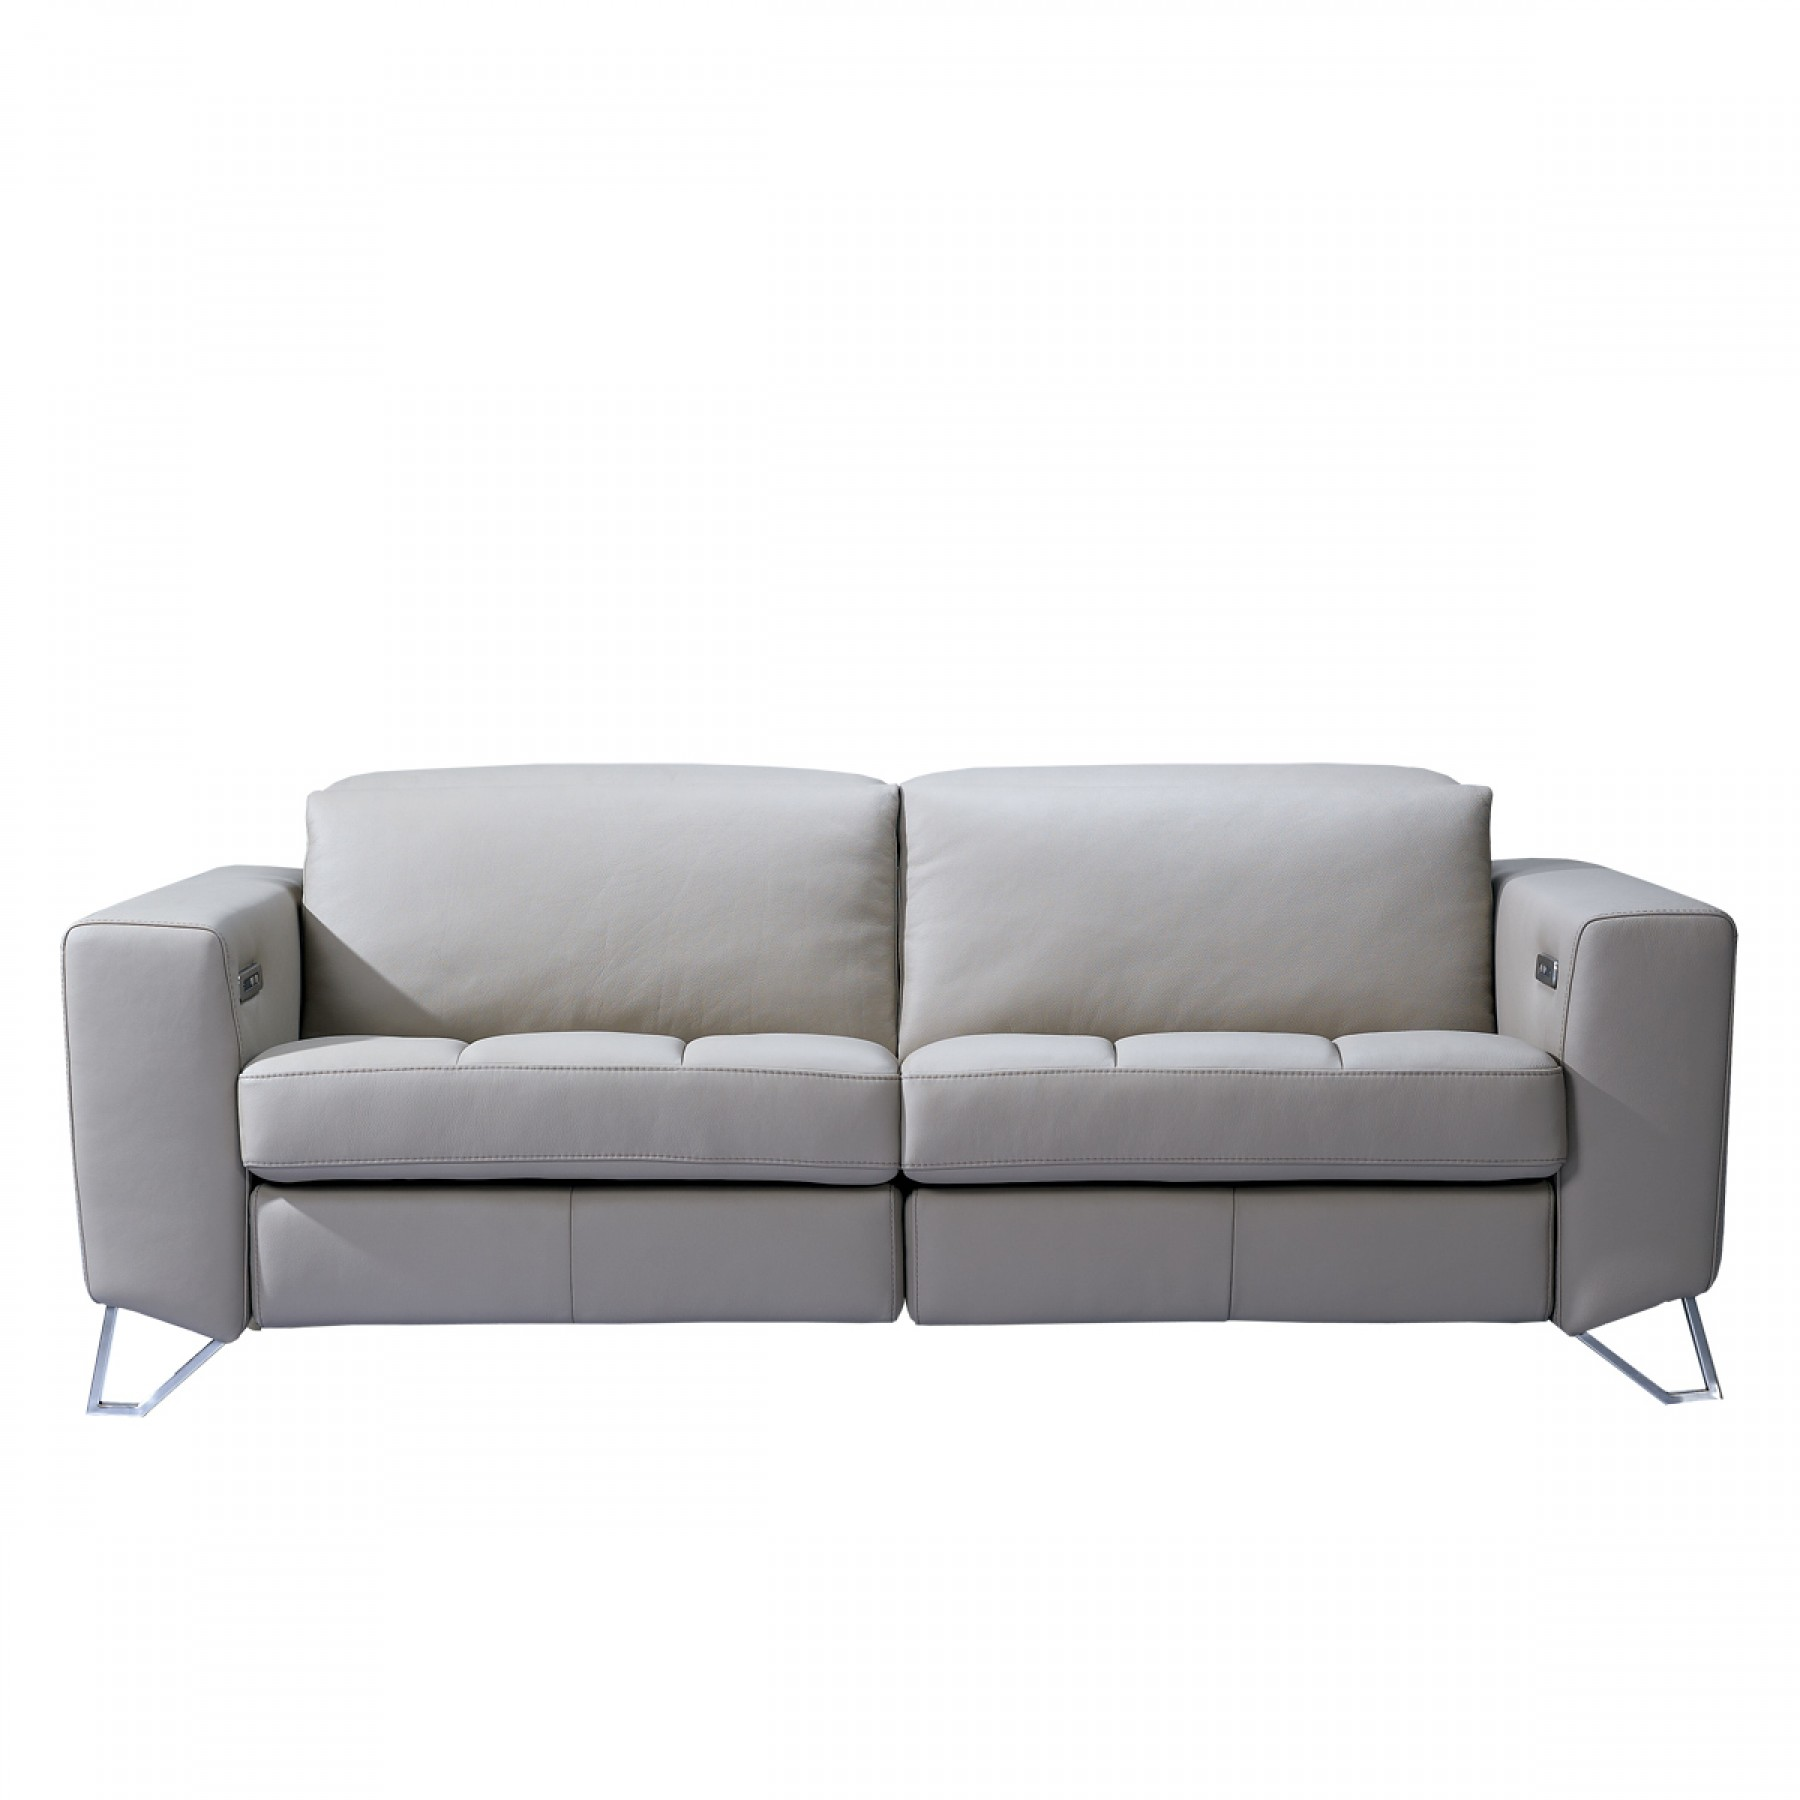 APERTO-3-SEATER-RECLINER-LEATHER-SOFA